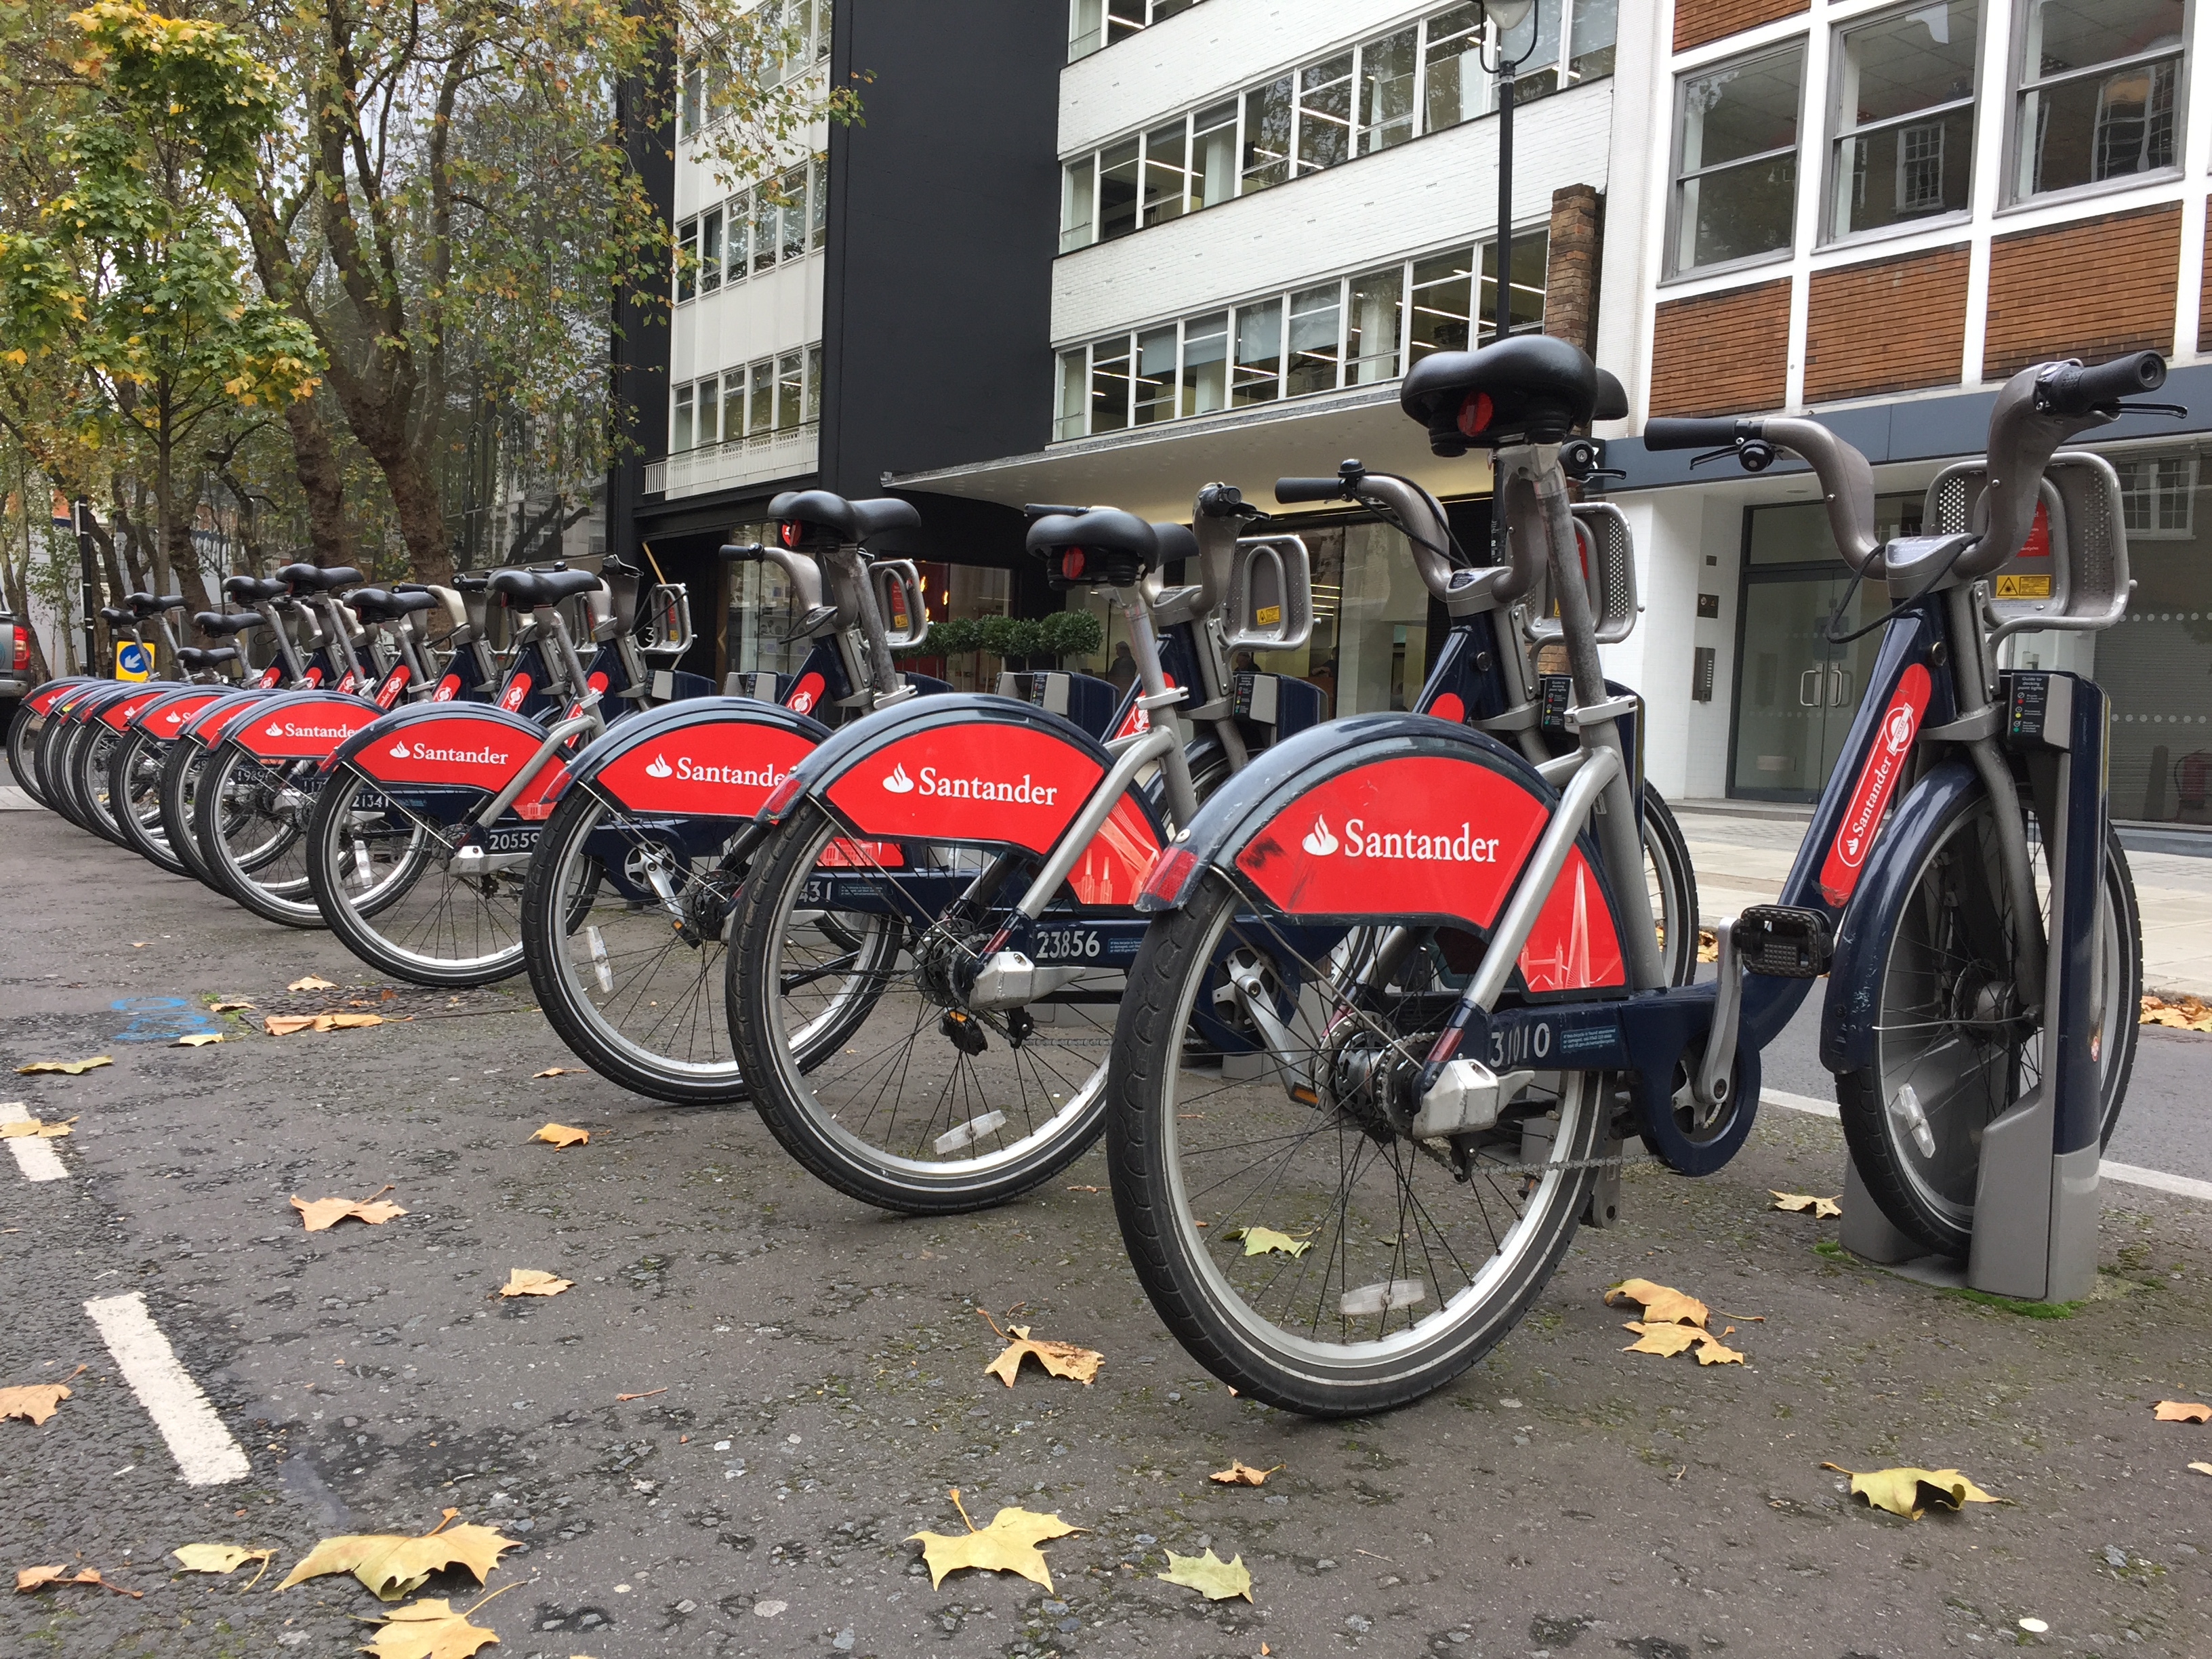 Santander Public Hire Bikes Will Be Available In Brixton